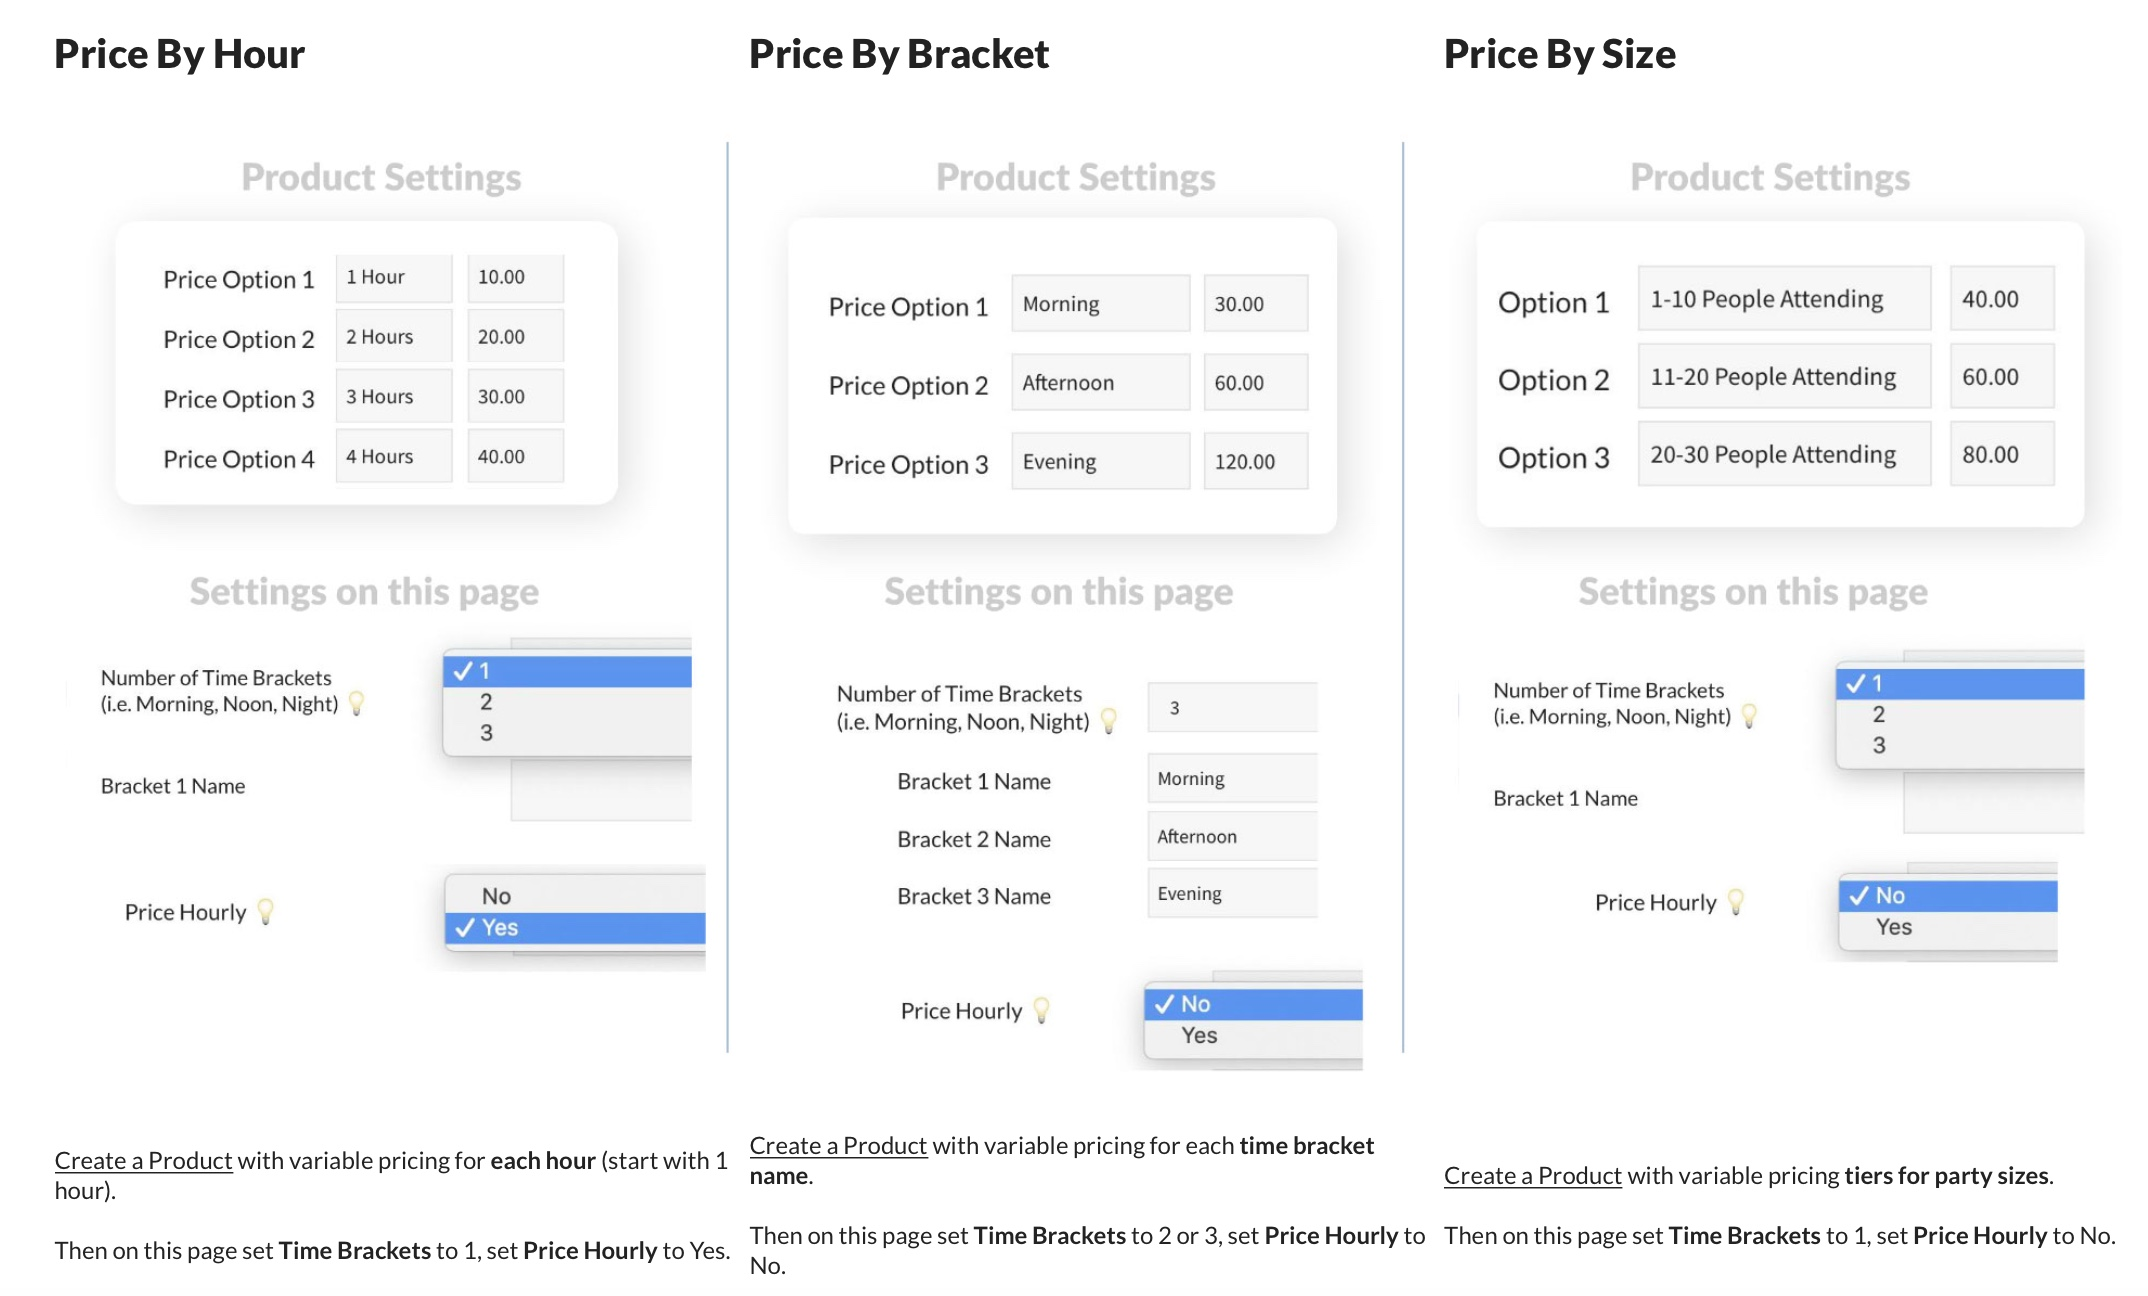 pooldues facility settings pricing options